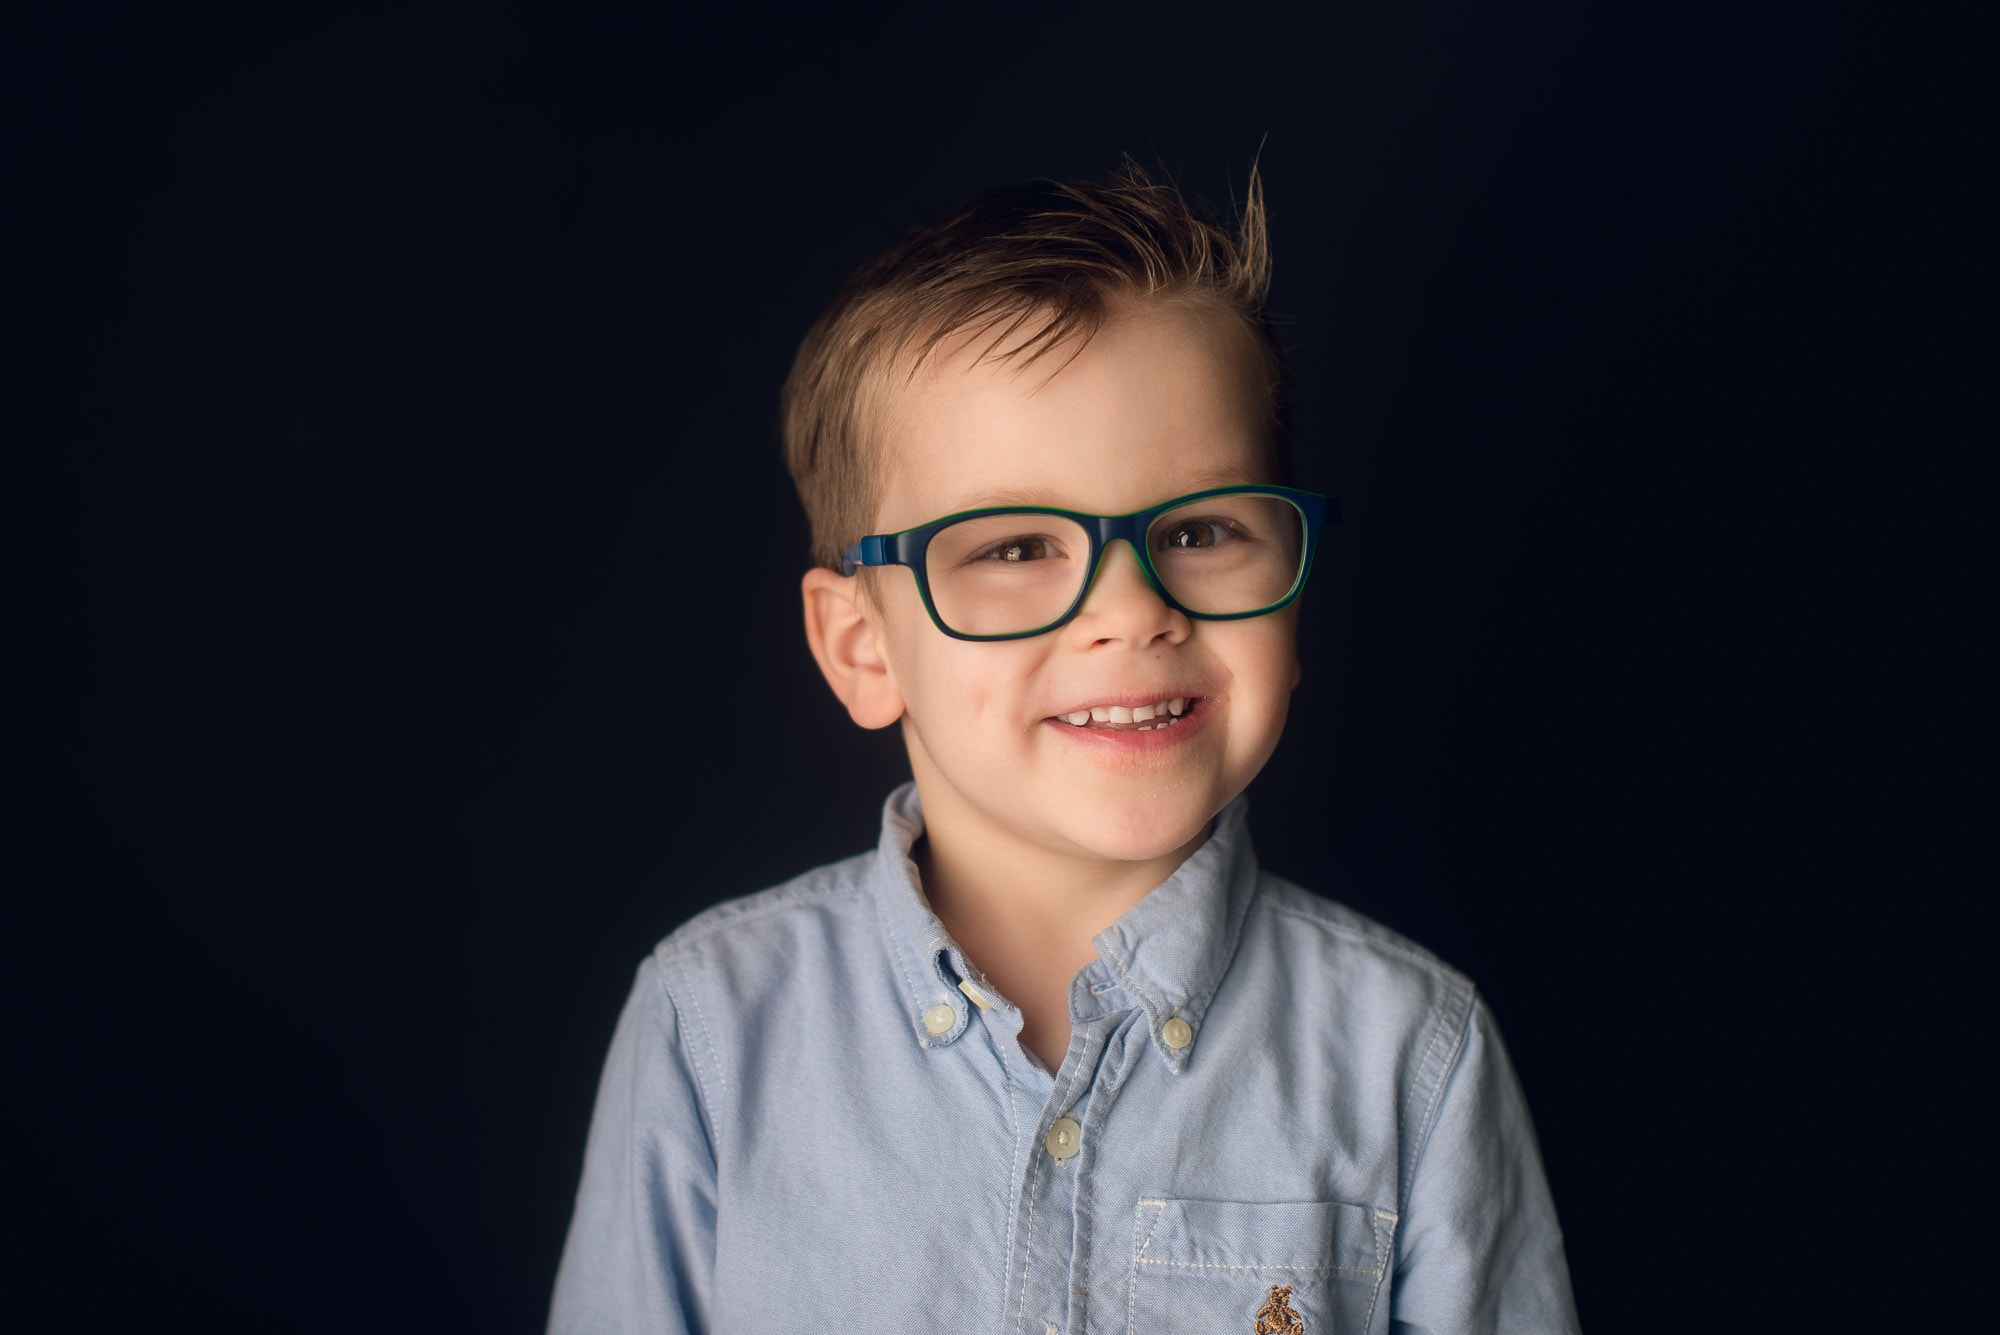 school portraits of child with glasses